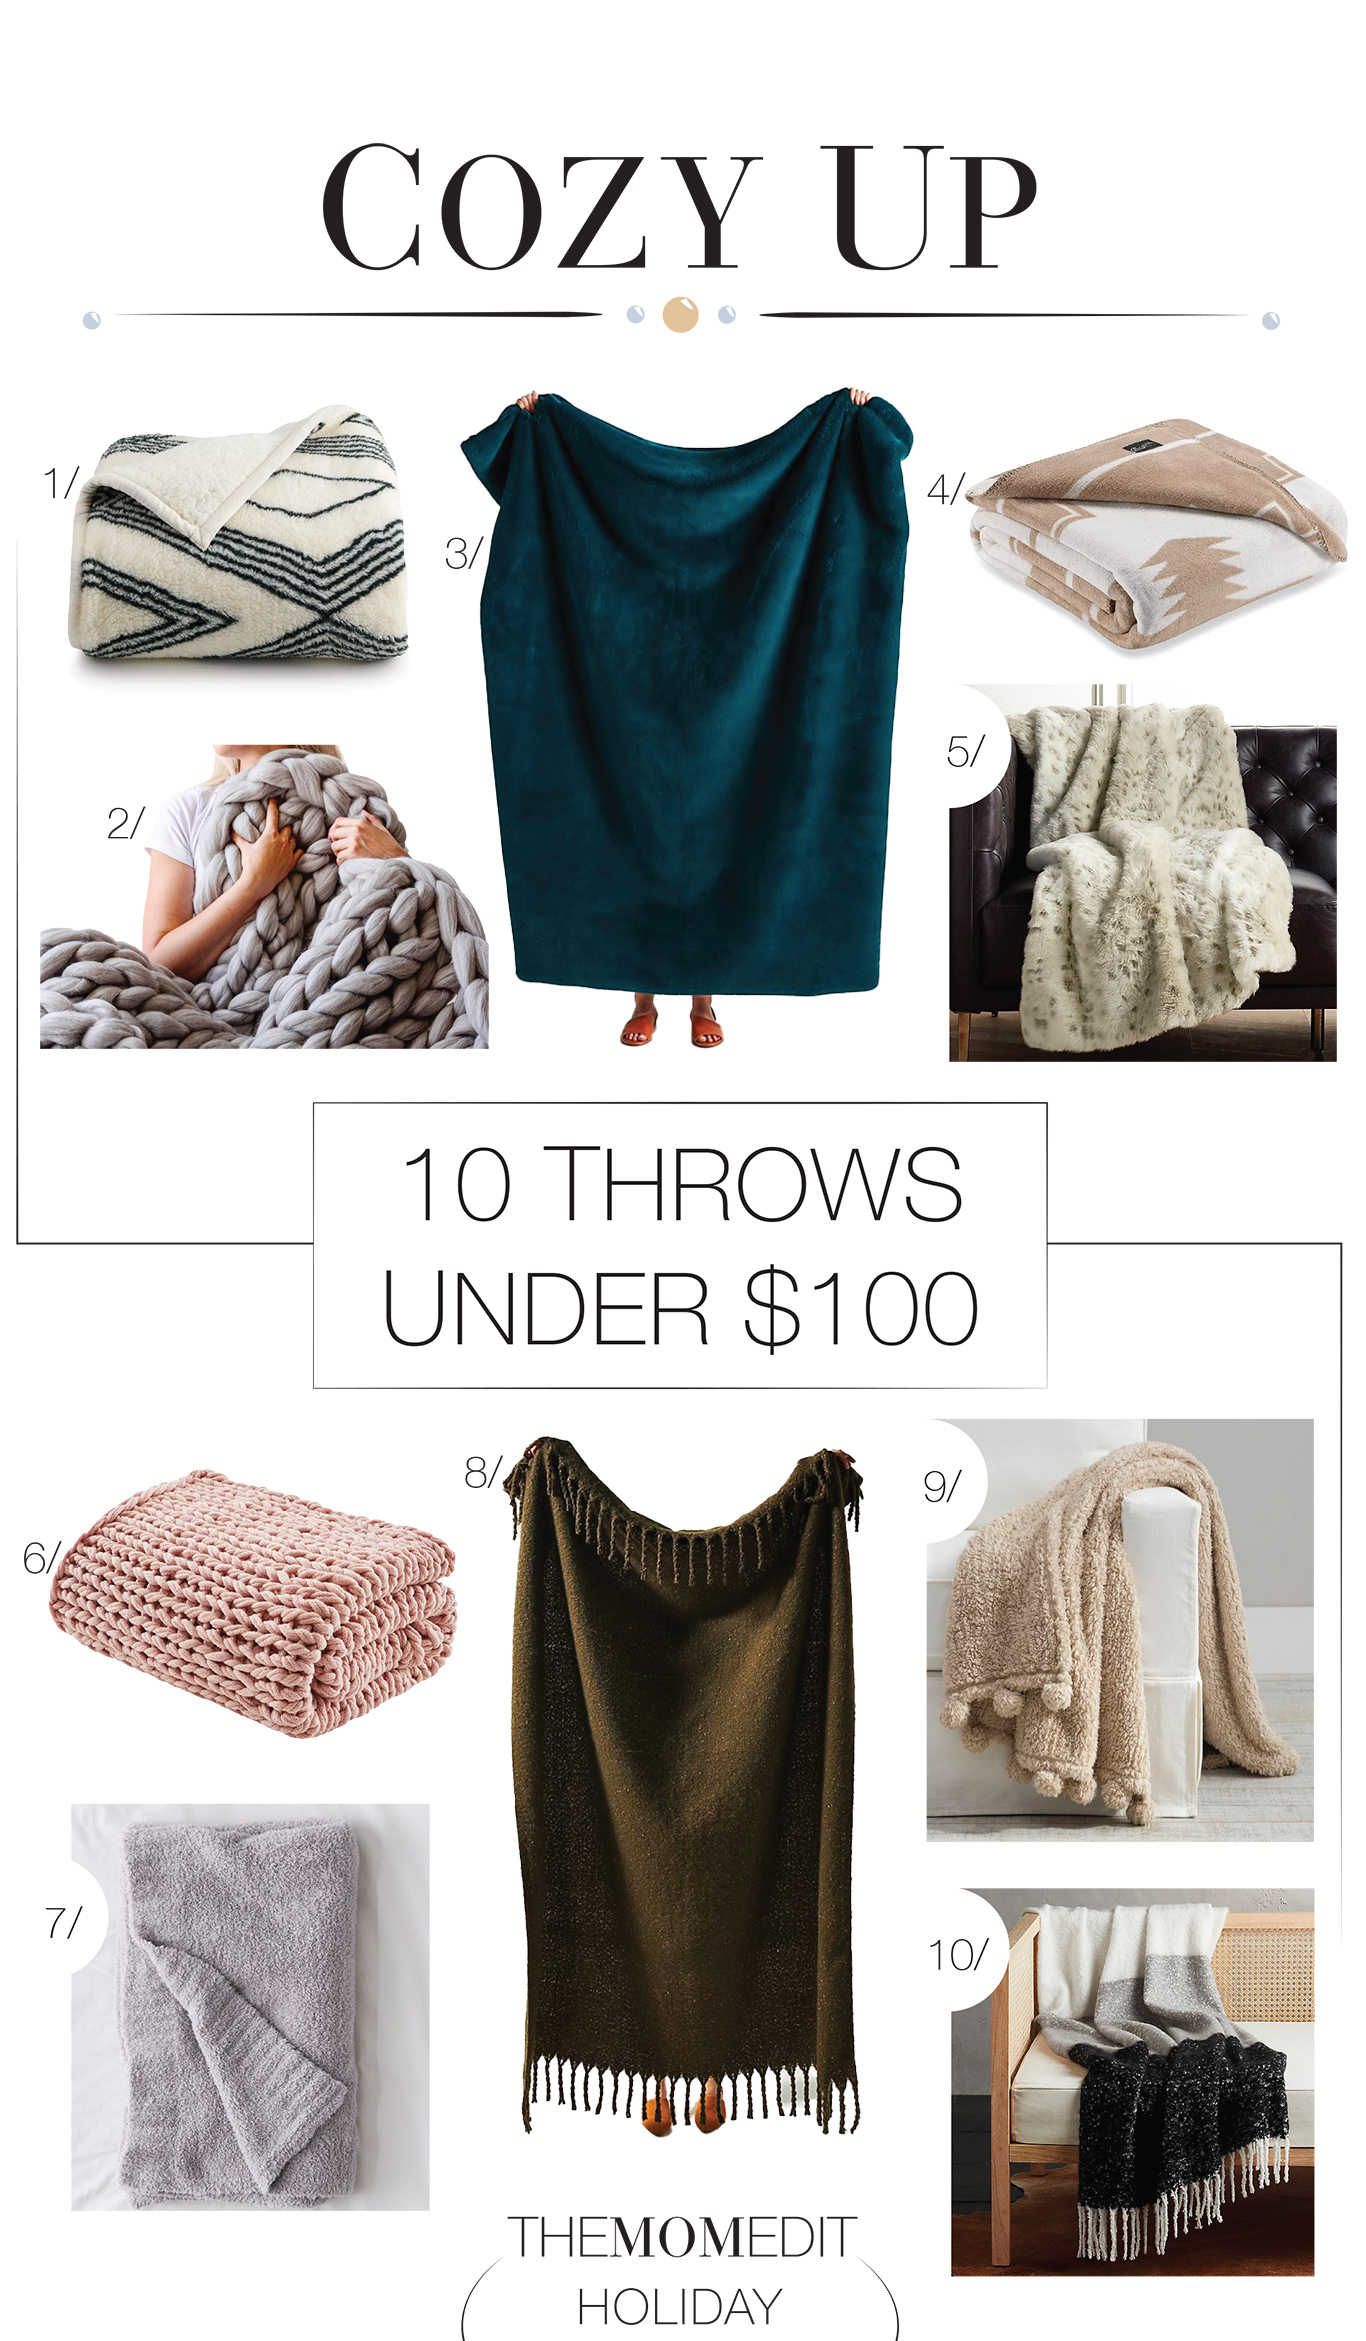 Everybody loves cozy throw blankets. So here are 10 impossibly cozy (& obviously stylish) throws under $100. Knit, sherpa, plush...Time to cuddle up.